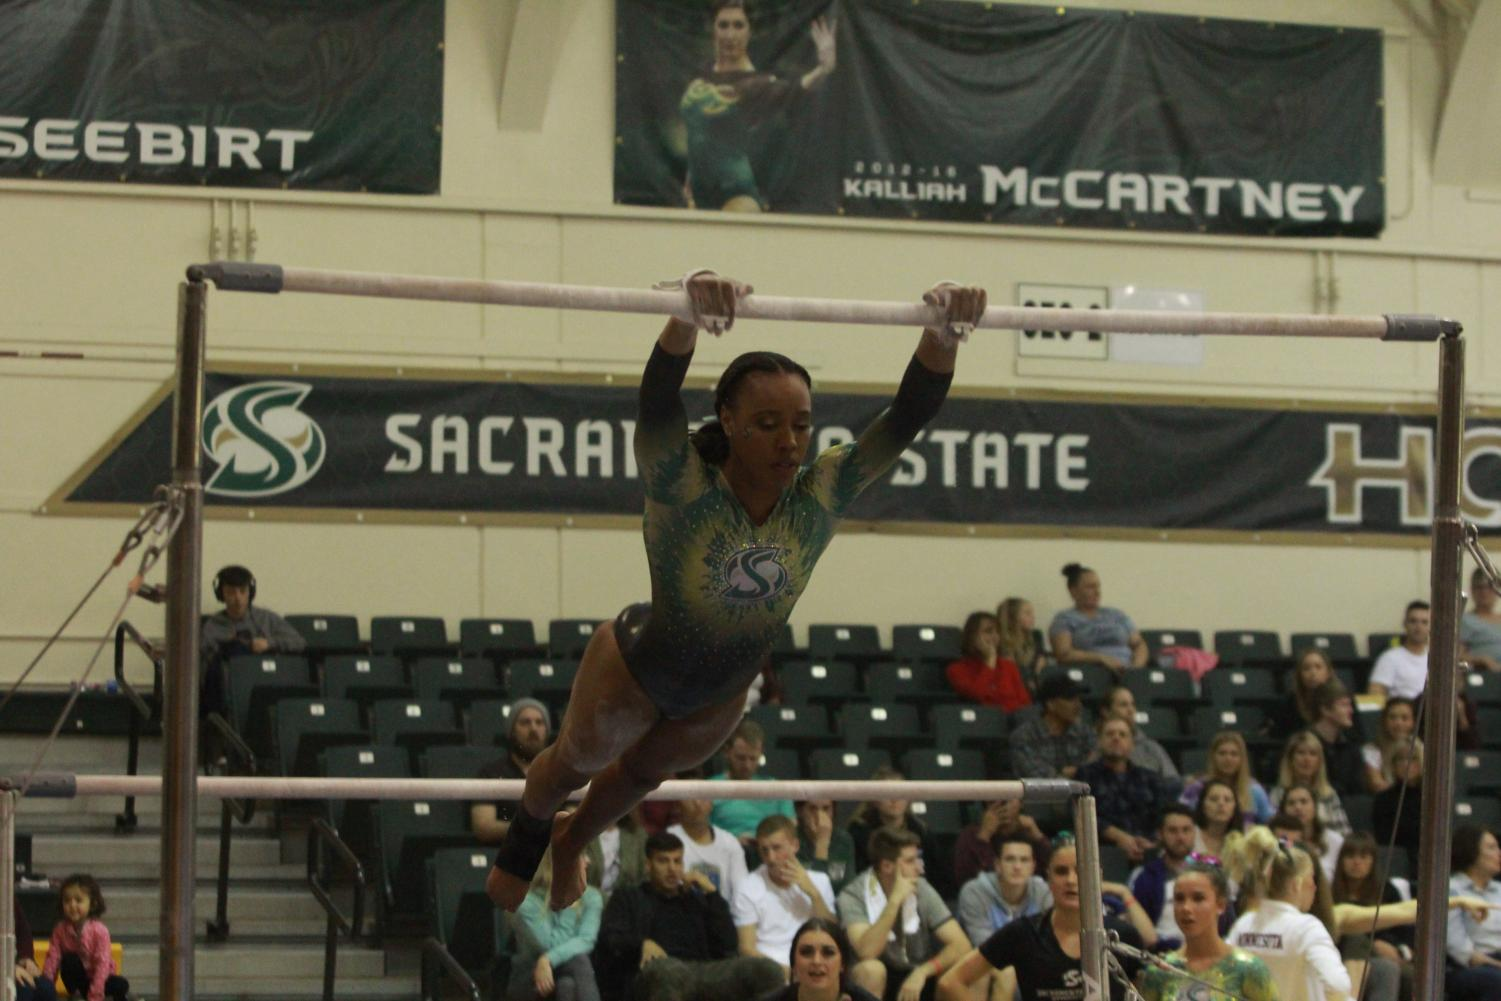 Sophomore Jordyn Brent competing on the uneven bars on March 9 at the Nest. Cal and Stanford headline the teams coming to Sacramento this season.